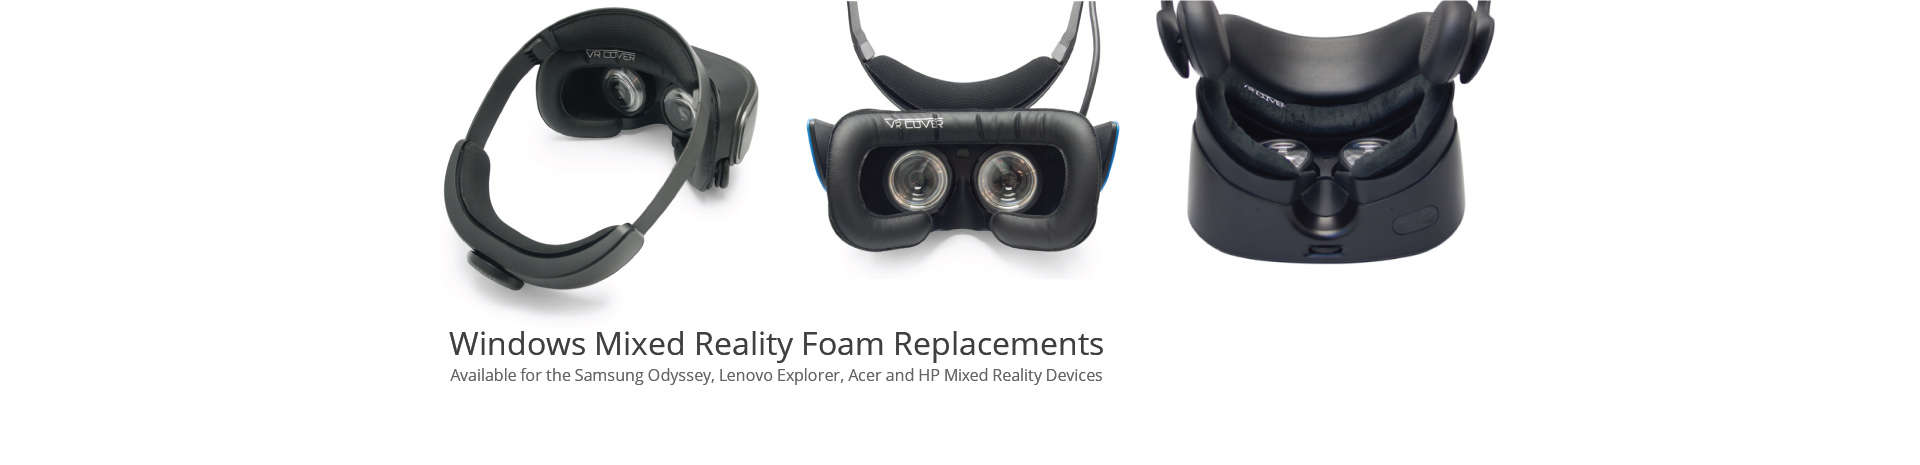 Windows Mixed Reality Foam Replacements Banner